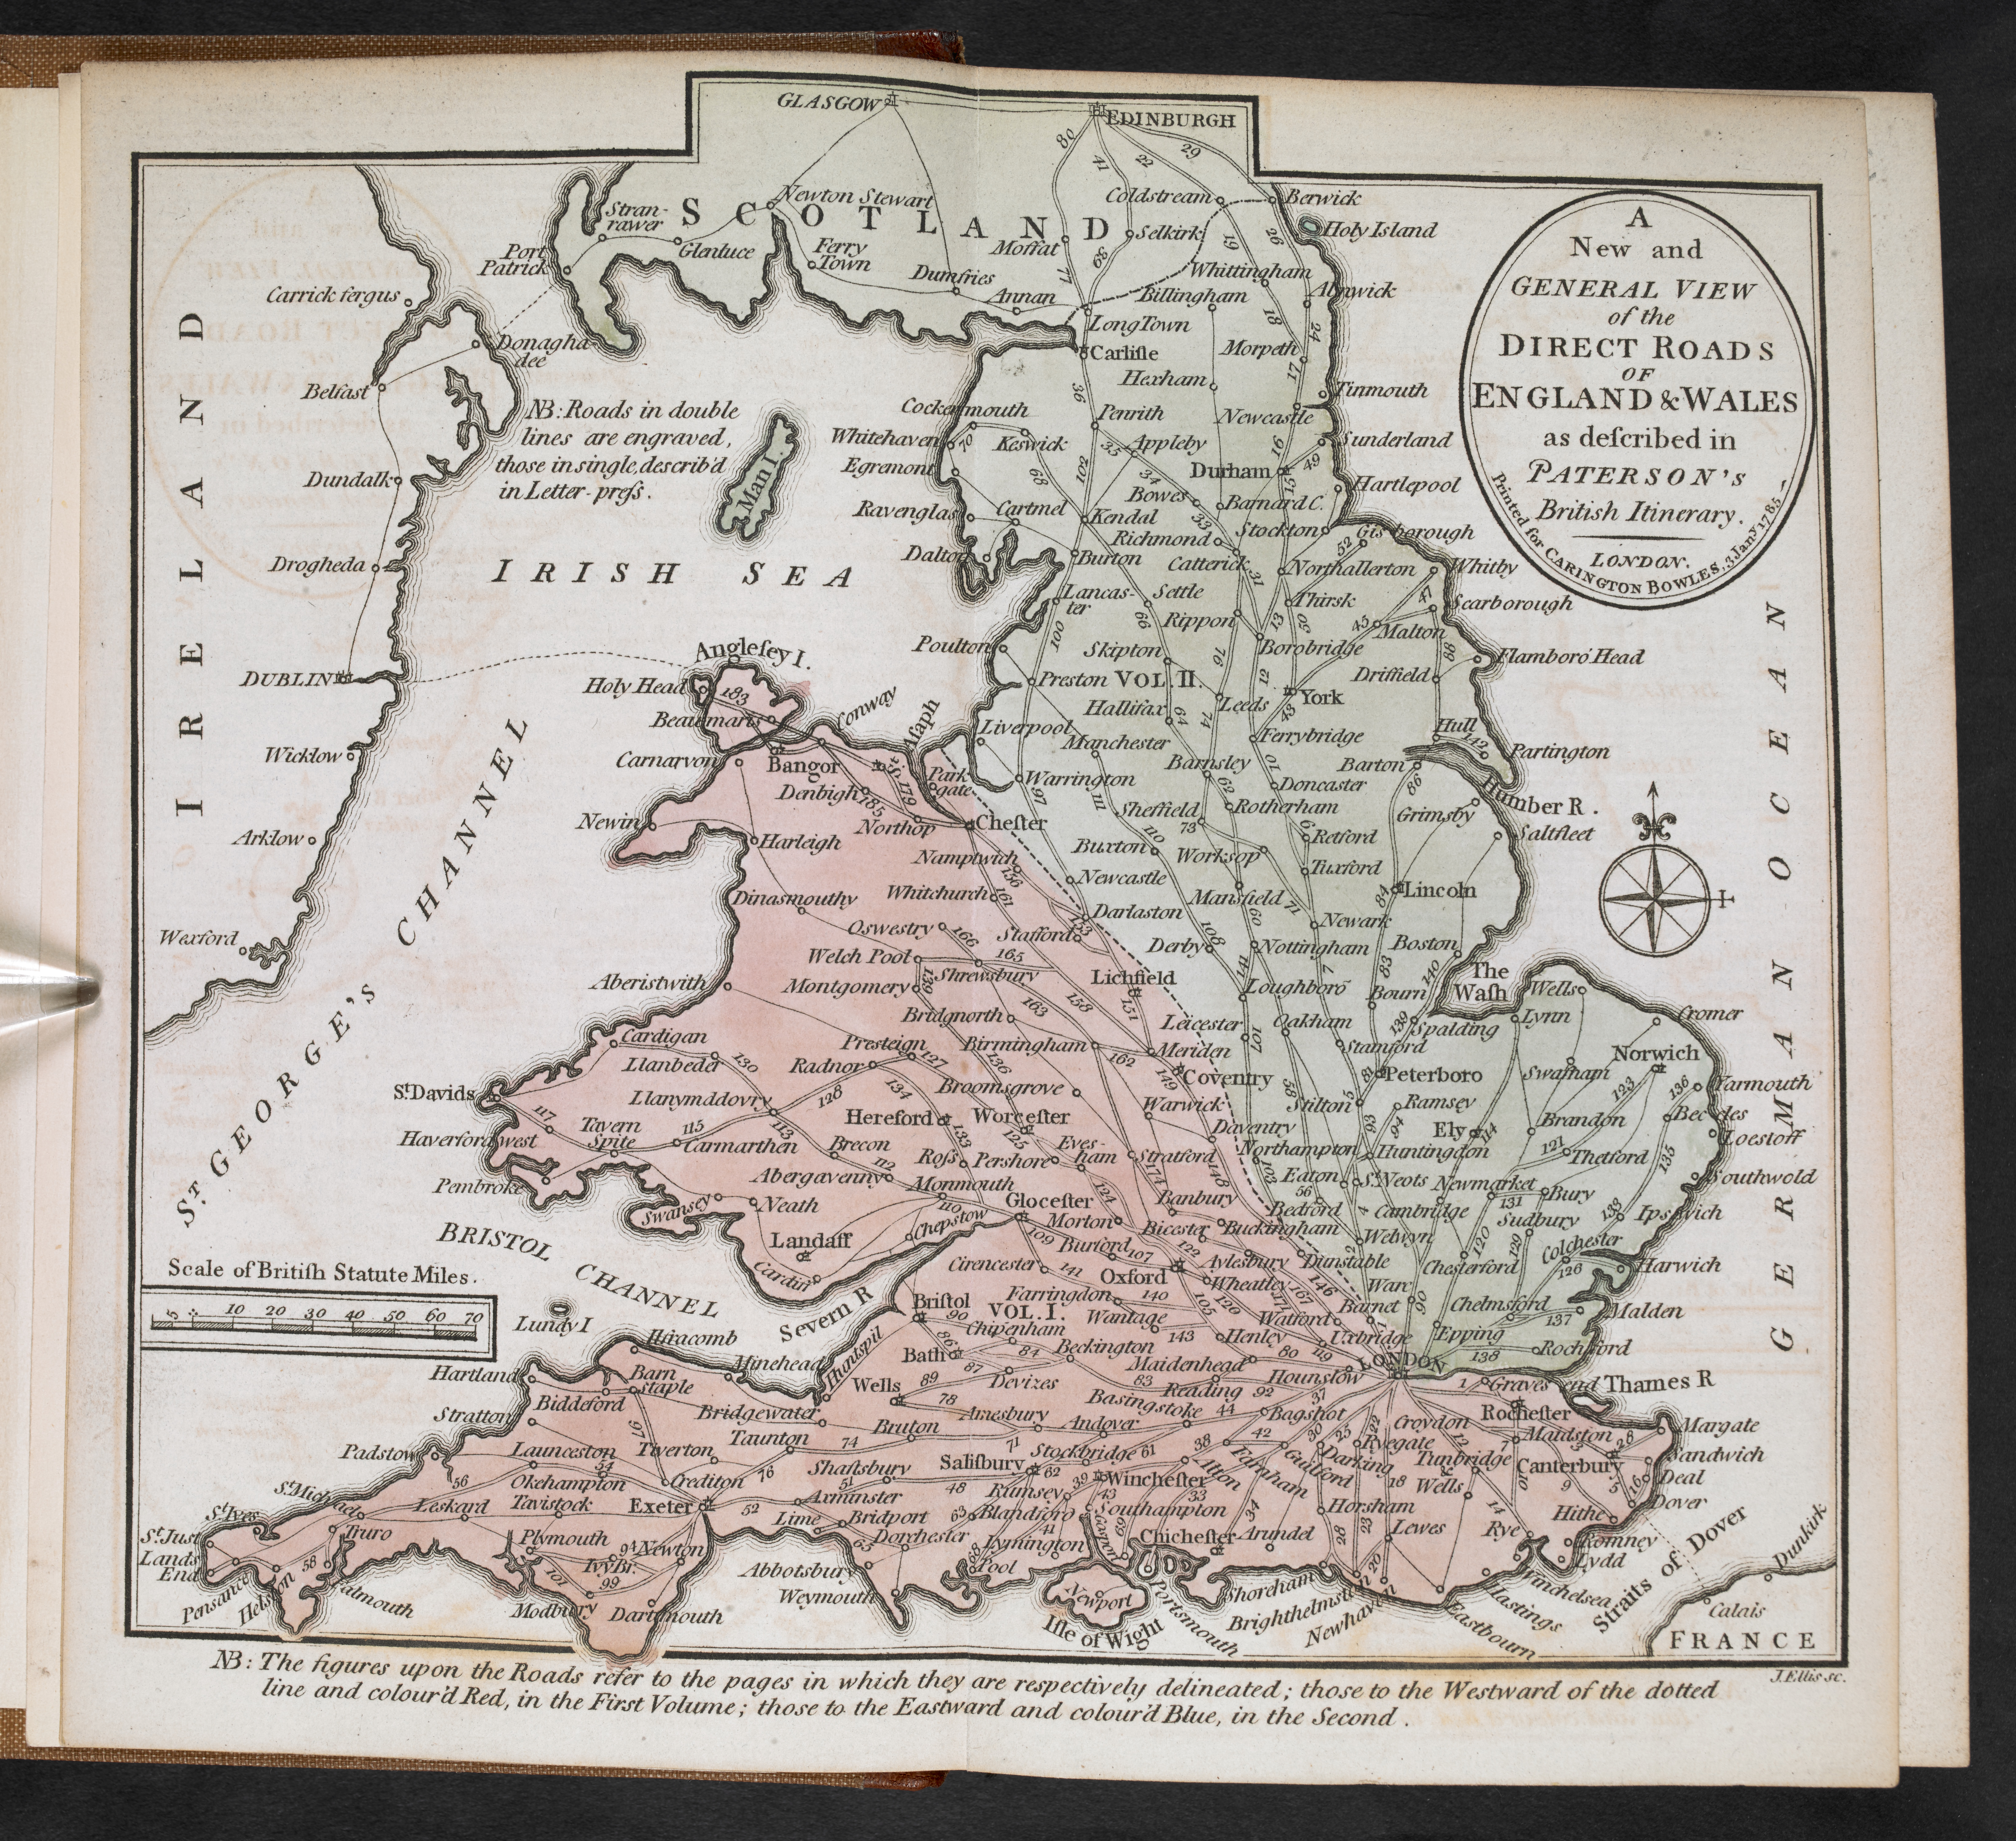 The natural world through early modern strip maps | British ... on swiss highway map, ar highway map, so highway map, barbados highway map, ireland highway map, portugal highway map, co highway map, il highway map, gb highway map, europe highway map, ca highway map, az highway map, netherlands highway map, mo highway map, romania highway map, mexico highway map, england highway map, la highway map, bb highway map, bangladesh highway map,